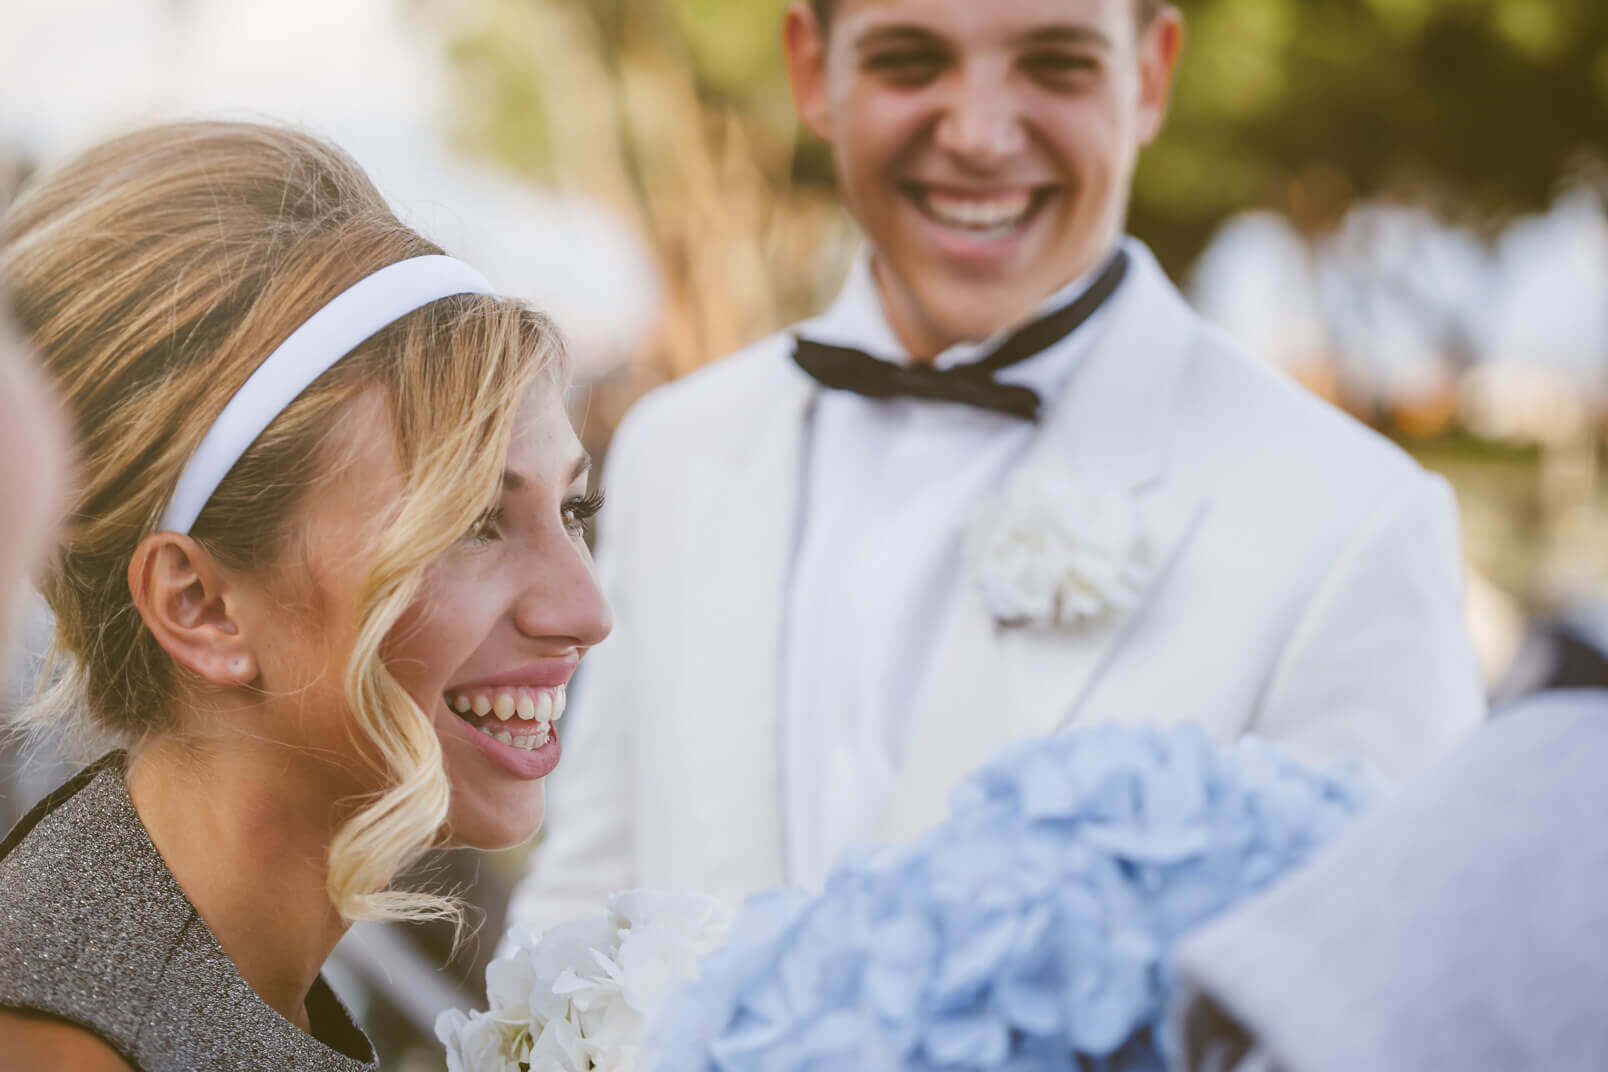 The bride and groom smiling, candid scene.